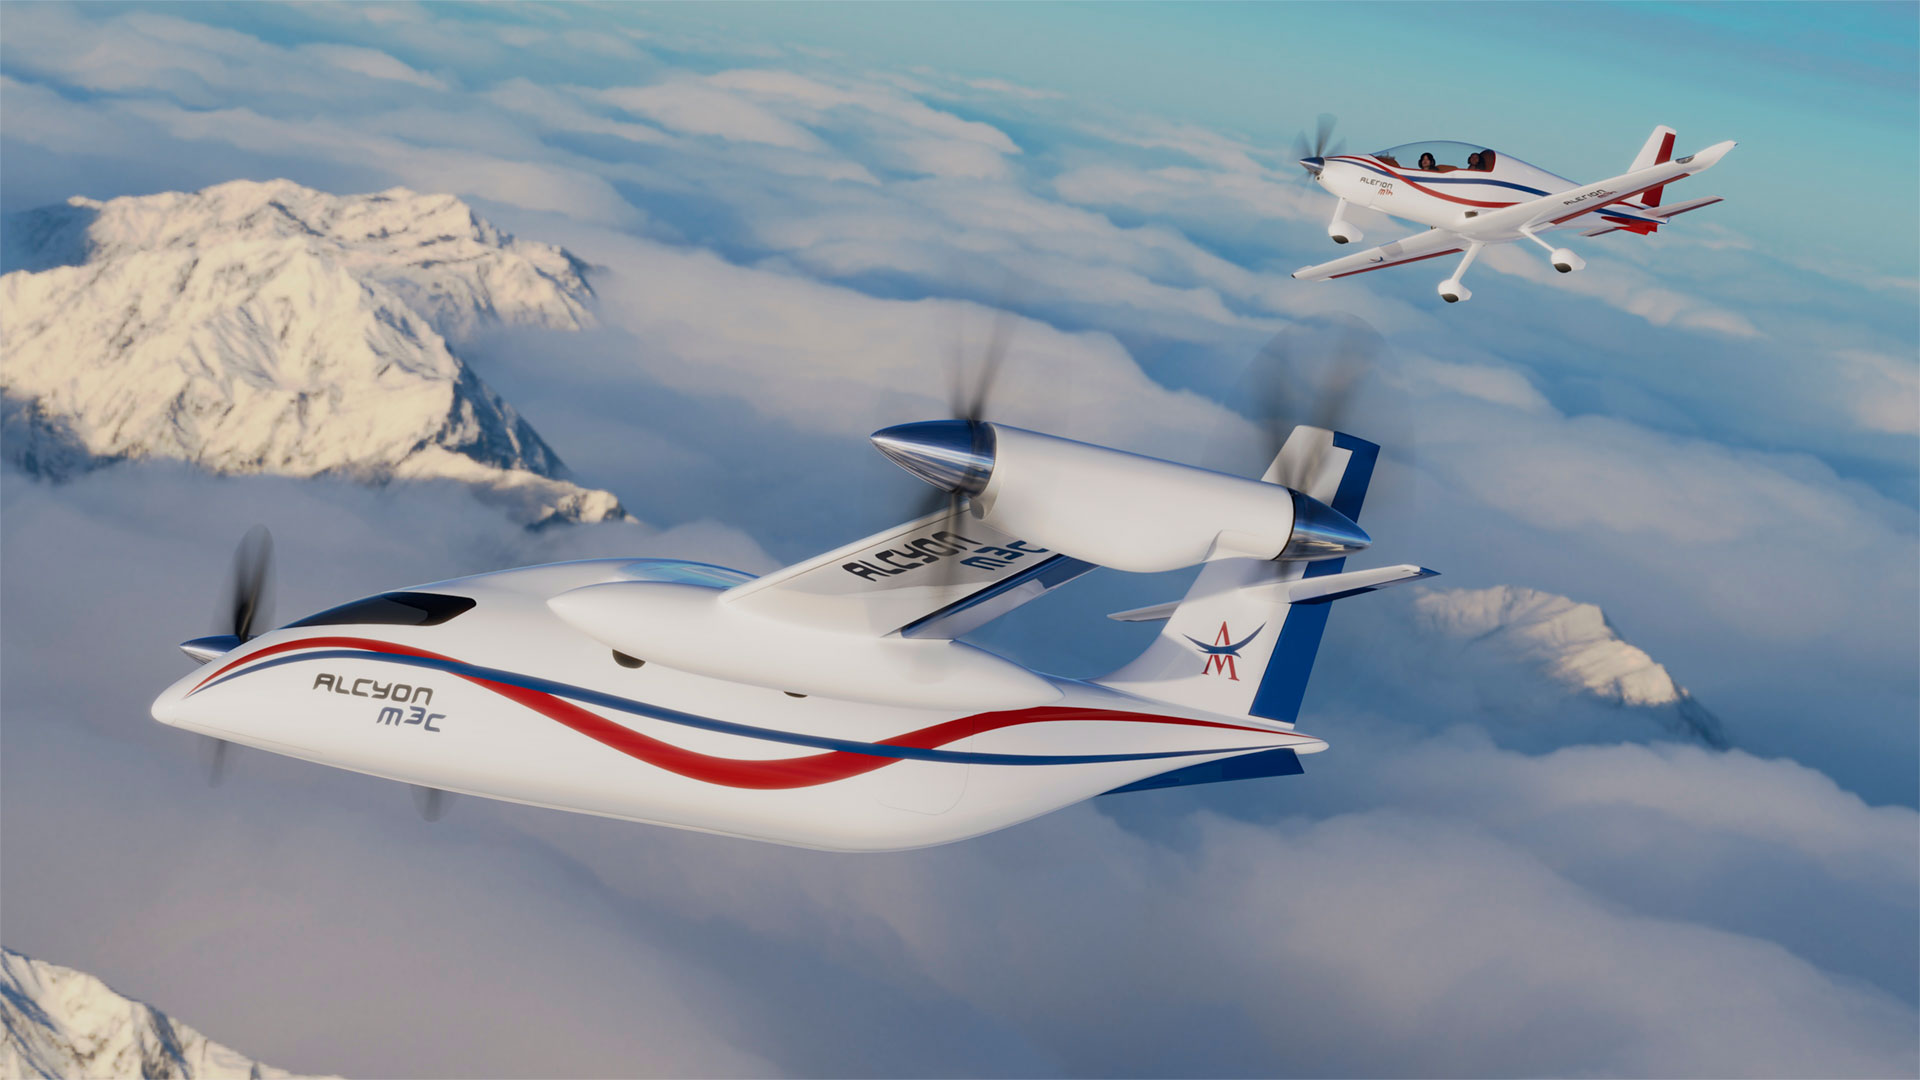 Concept Hybrid and hydrogen-powered aircraft, with short take-off and landing meeting the requirements of modern mobility